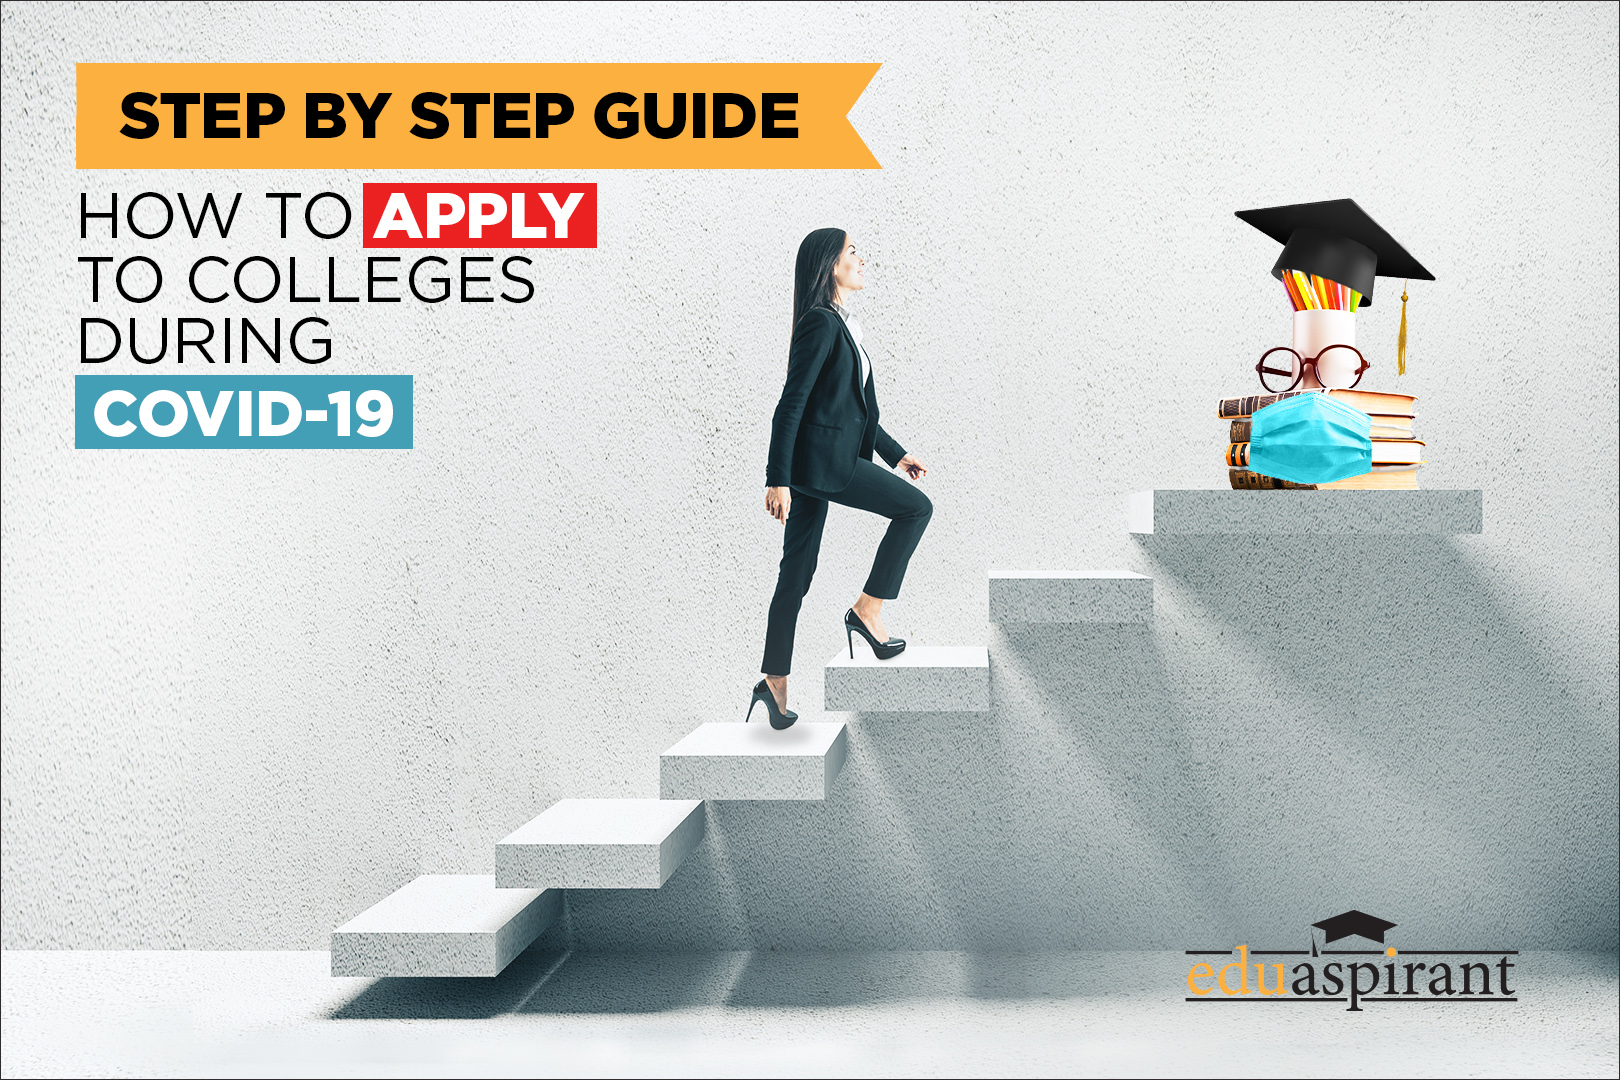 Your Step by Step Guide to the College Application Process during the Pandemic